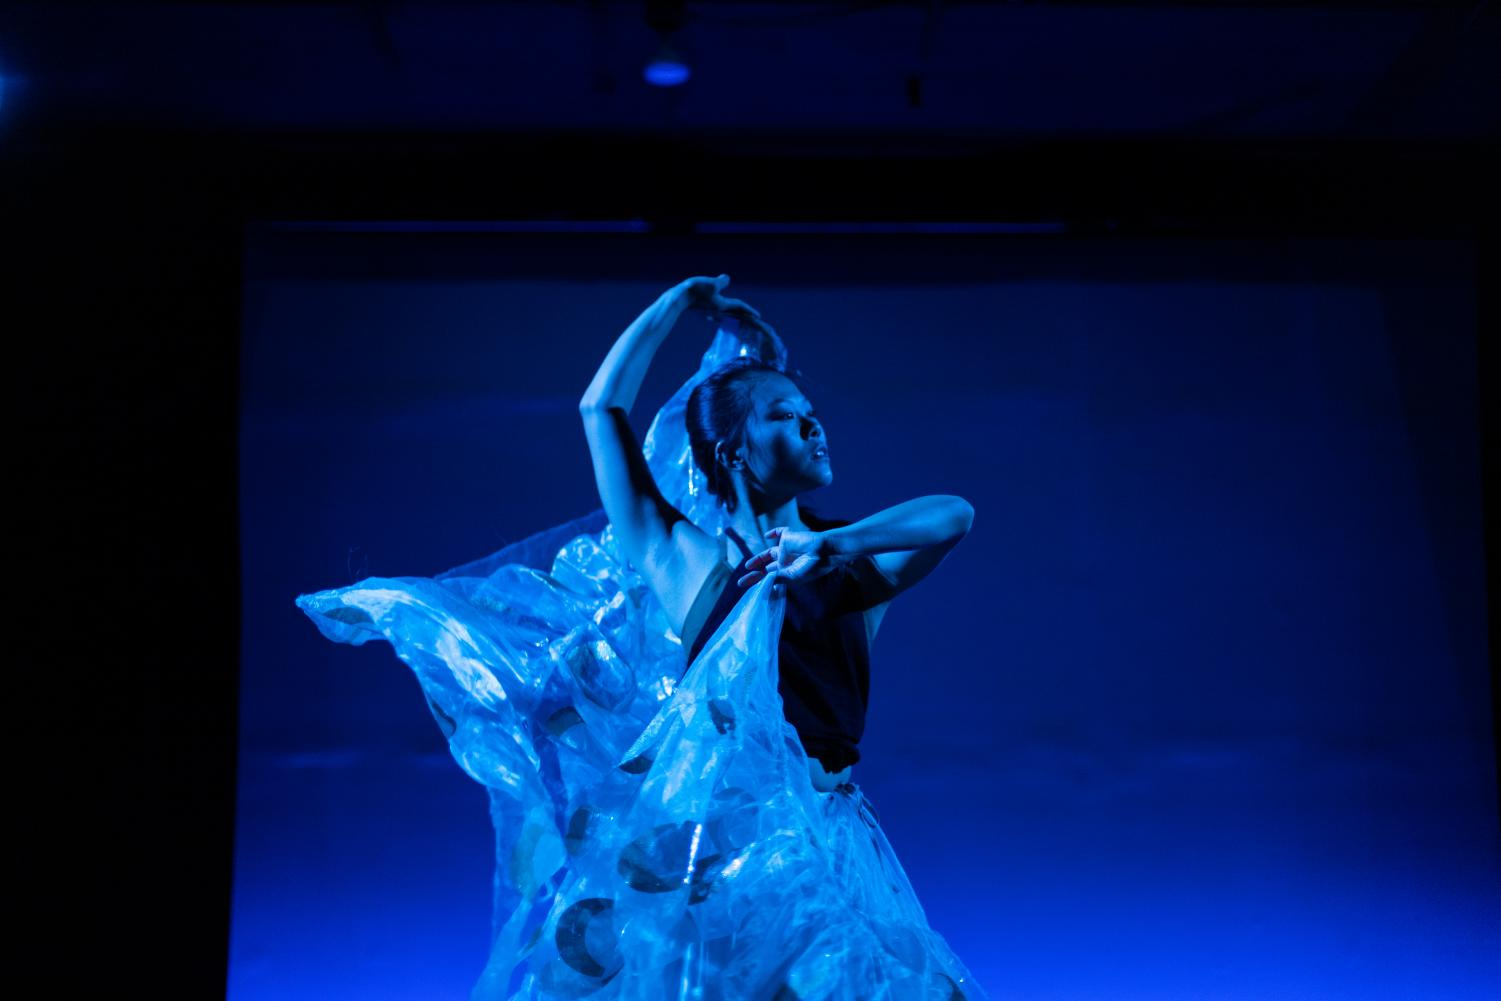 Nearing the end of the show, Julia Gay performs the serene Chinese peacock dance. As she moves and twirls, the dance just feels right: like an acknowledgment of grieving as well as a welcome to growth.